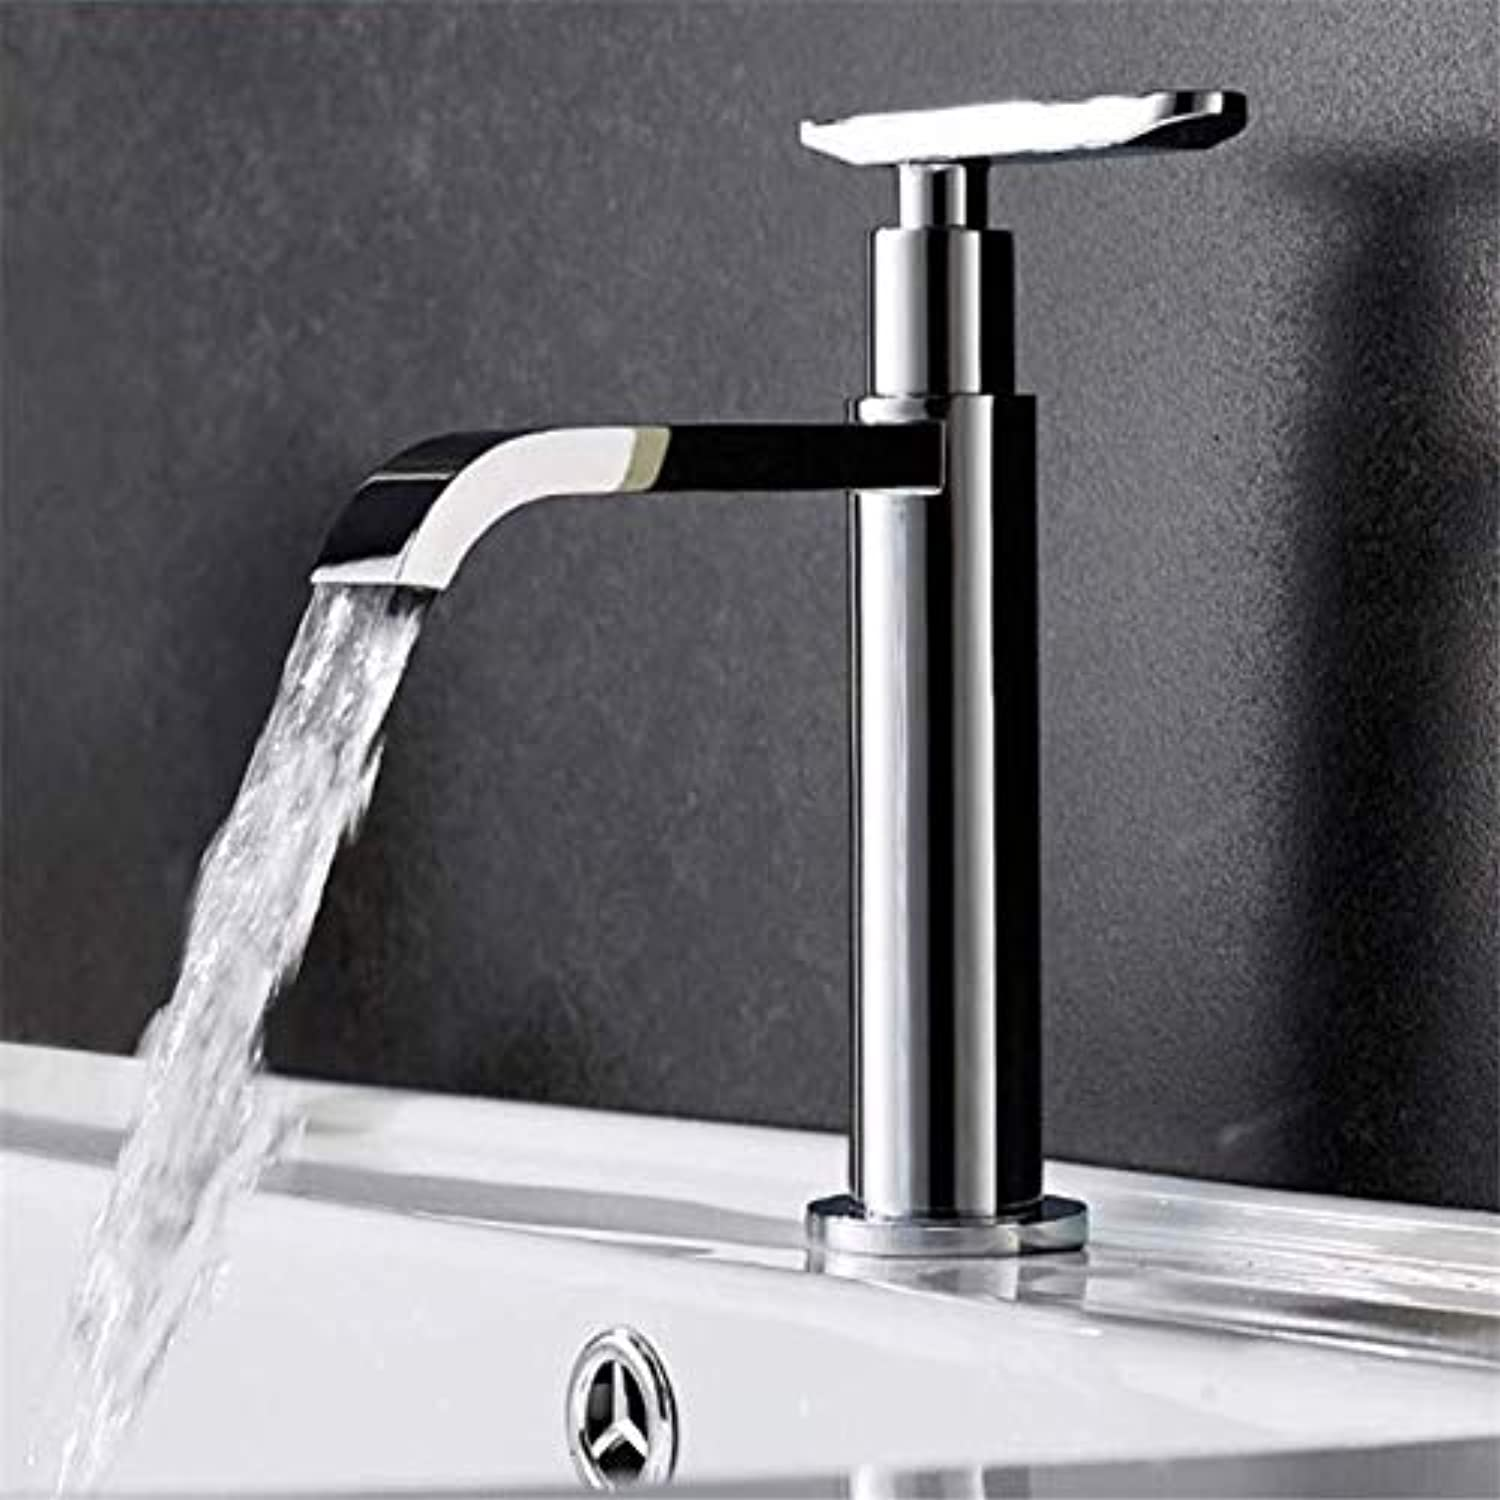 Fashion Basin Faucet Single Cold Hand Wash Bathroom Hotel Faucet Hotel Sink Bar Faucet